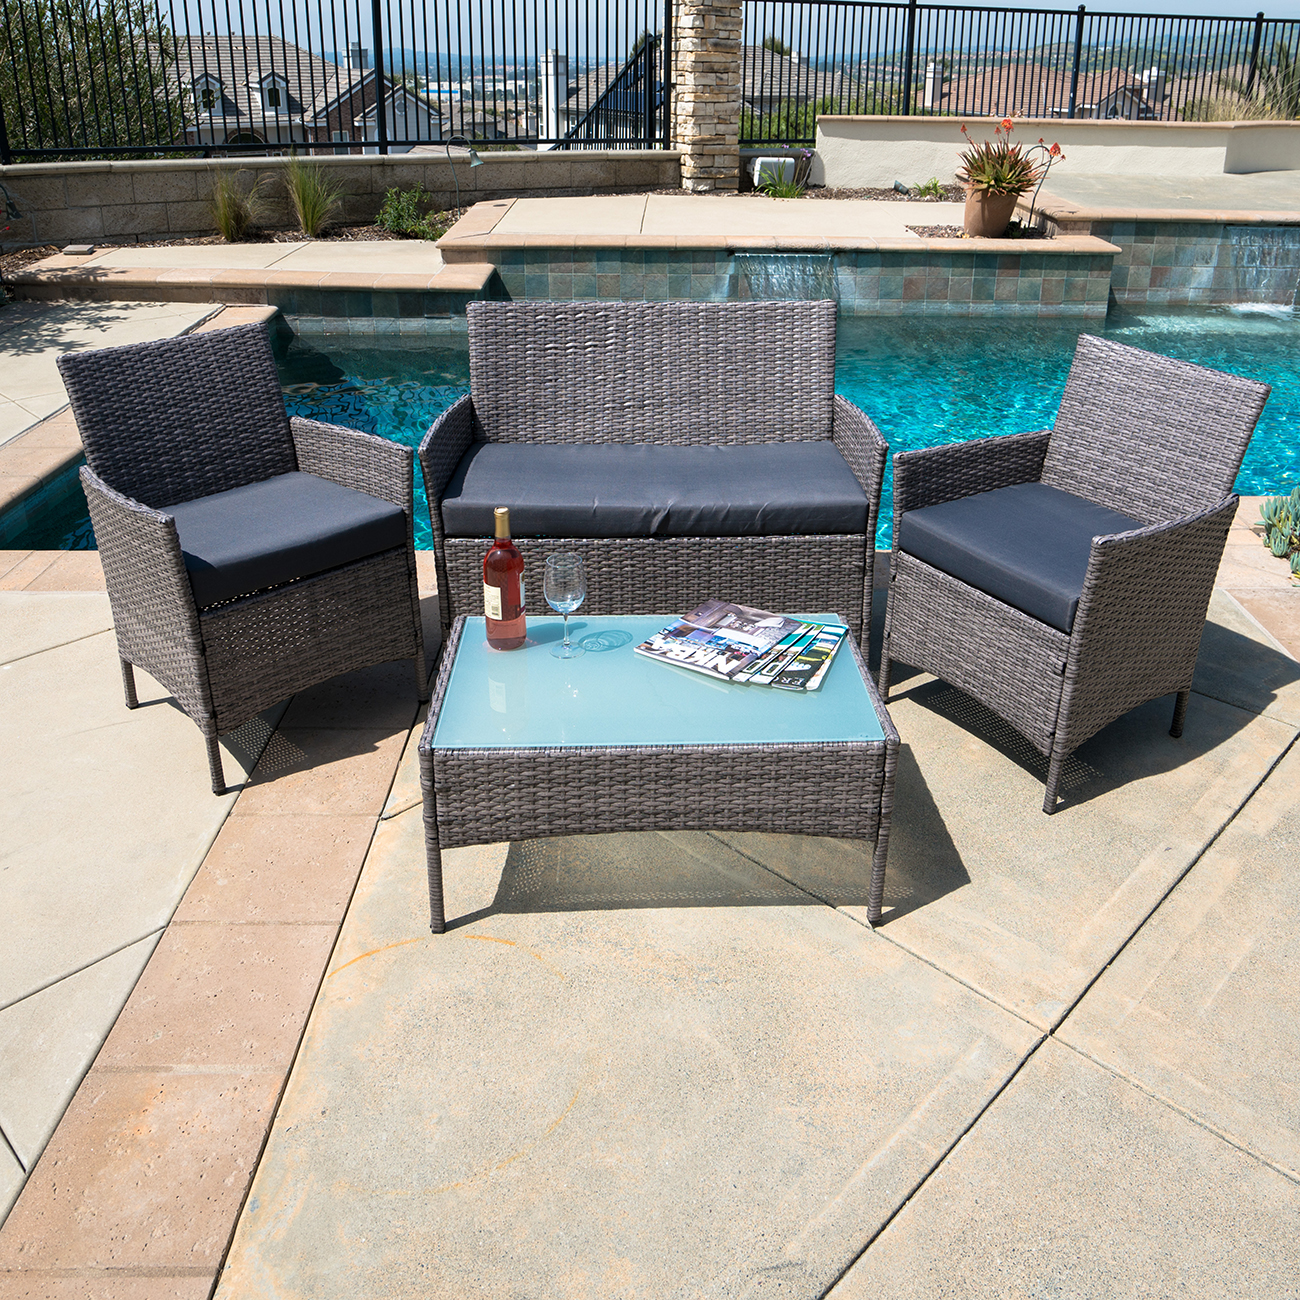 Stupendous Details About 4 Pc Rattan Patio Furniture Set Garden Lawn Sofa Gray Wicker Cushioned Seat Home Interior And Landscaping Ferensignezvosmurscom